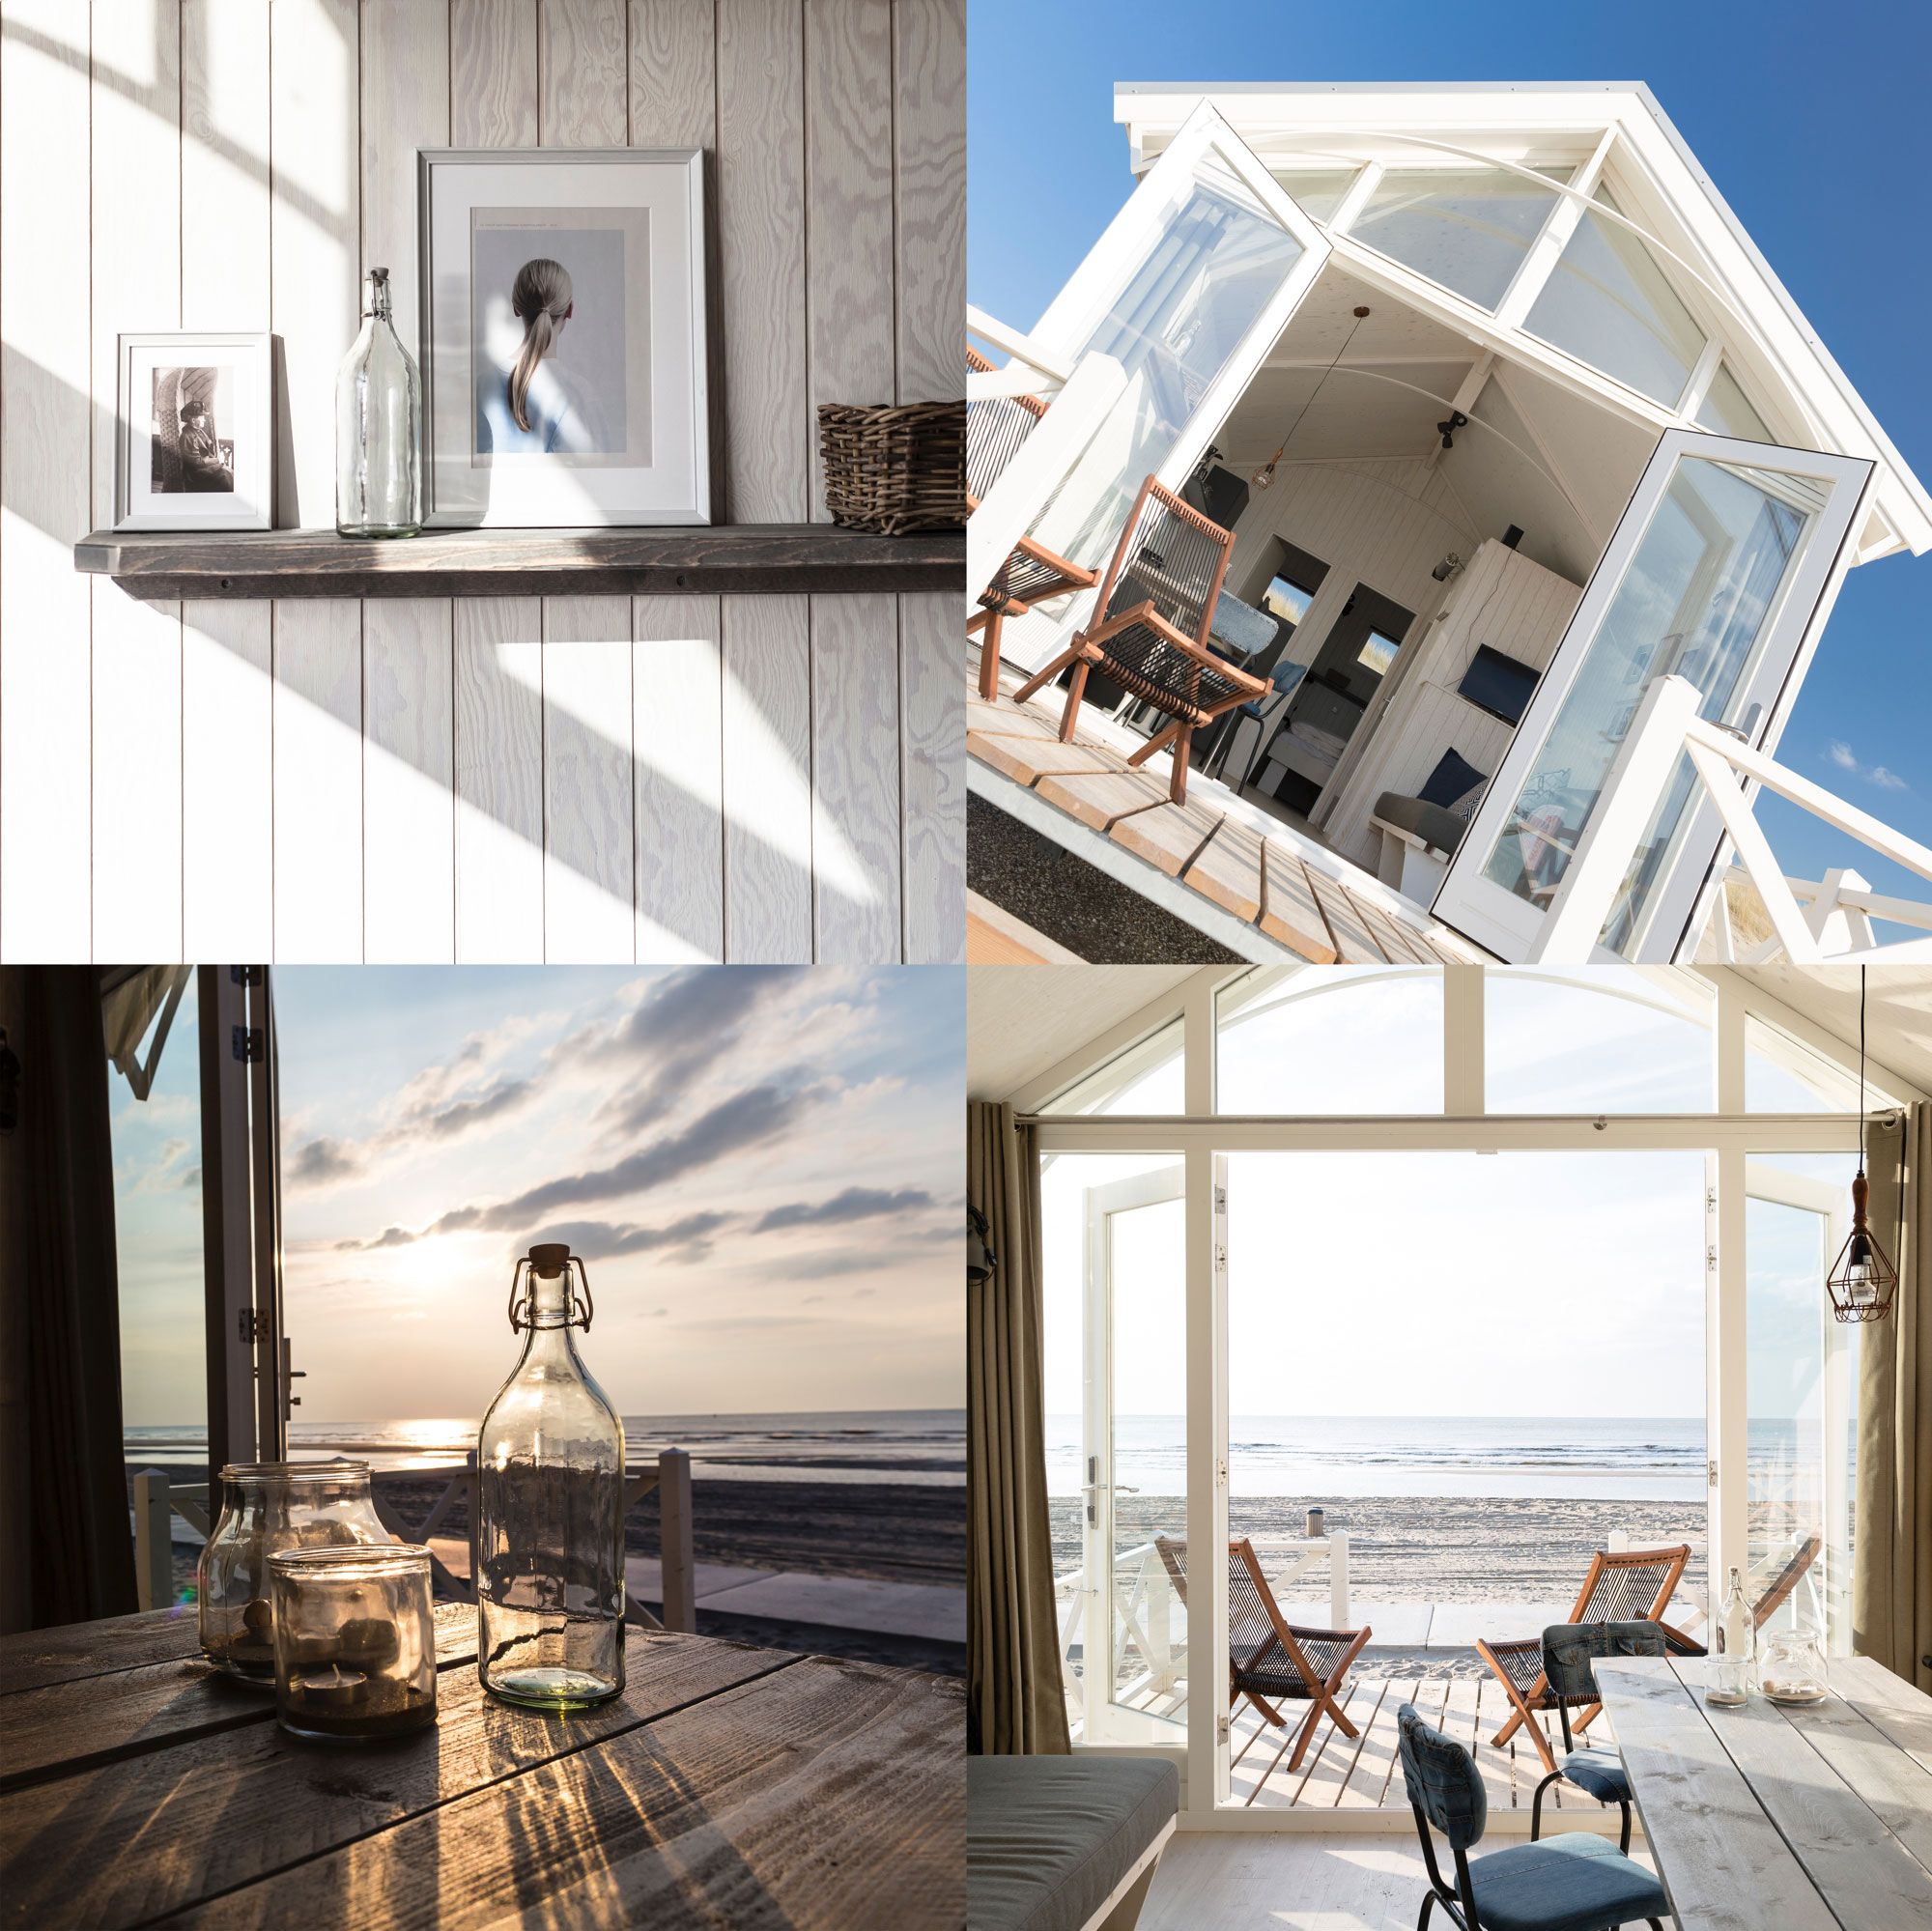 aufwachen am strand von den haag in holland jetzt k nnen sie ein strandhaus mieten sonstiges. Black Bedroom Furniture Sets. Home Design Ideas